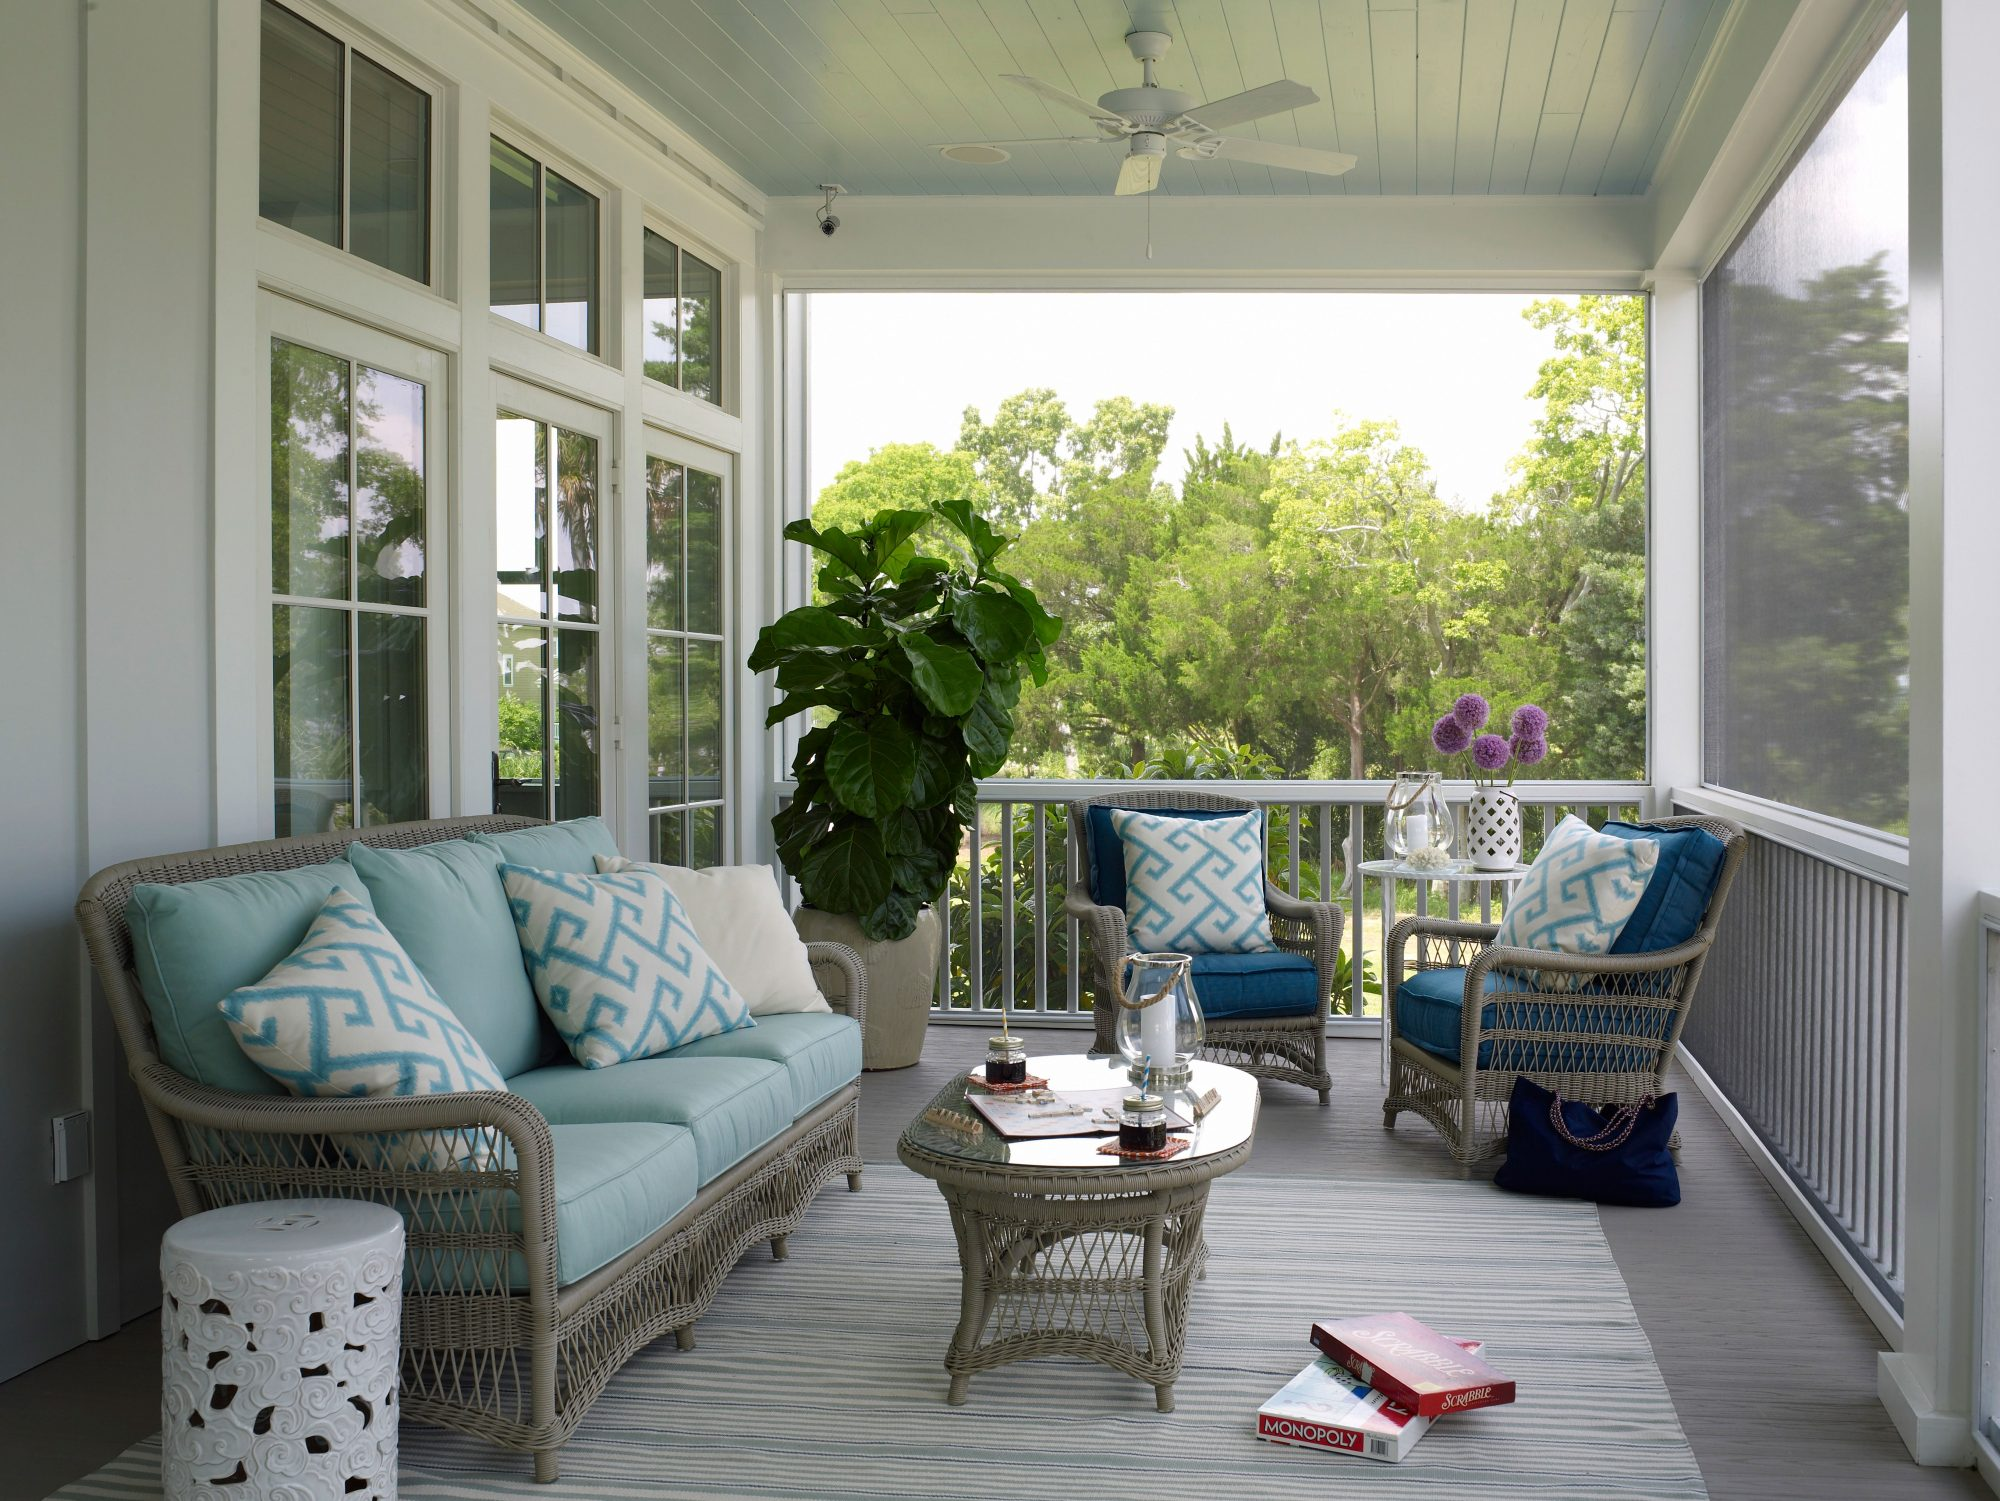 The back porch of our 2013 Showhouse in Daniel Island, South Carolina, is all about comfort and calming colors. The blue palette ranges from light to dark and is balanced by the natural-hued wicker furniture.